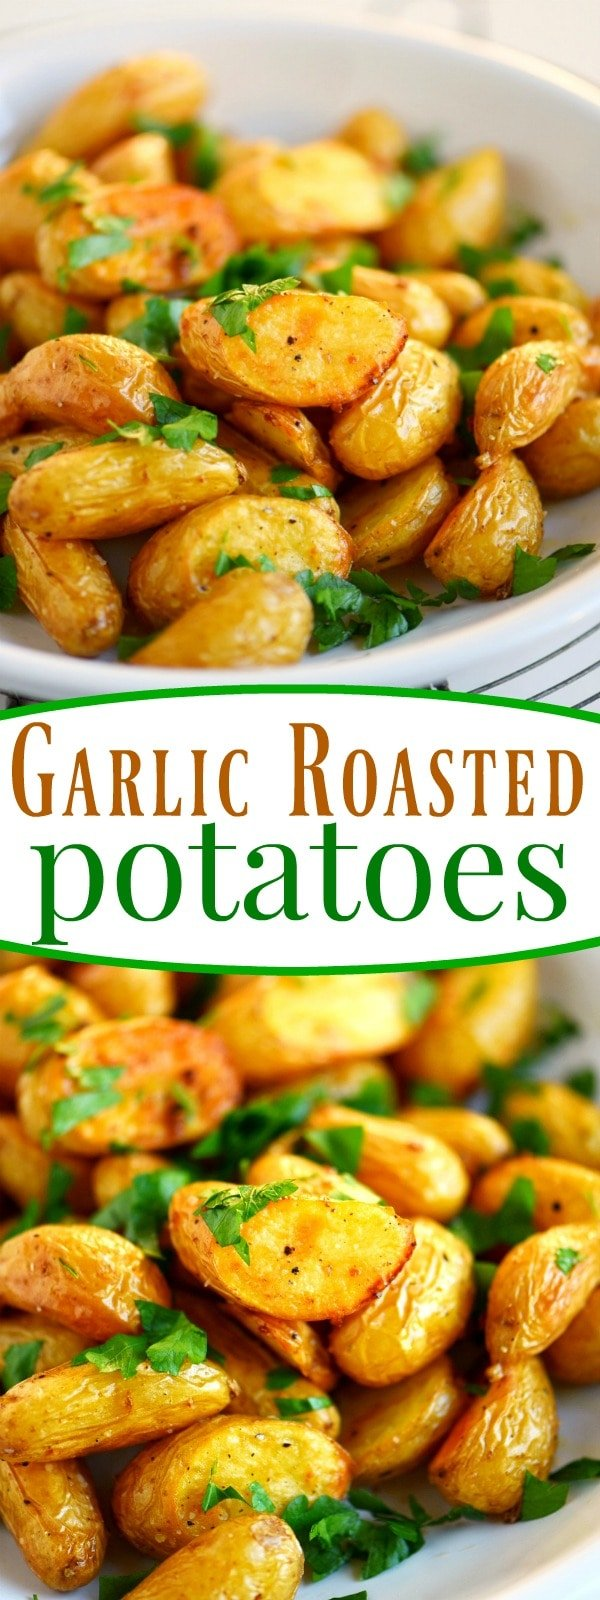 garlic-roasted-potatoes-recipe